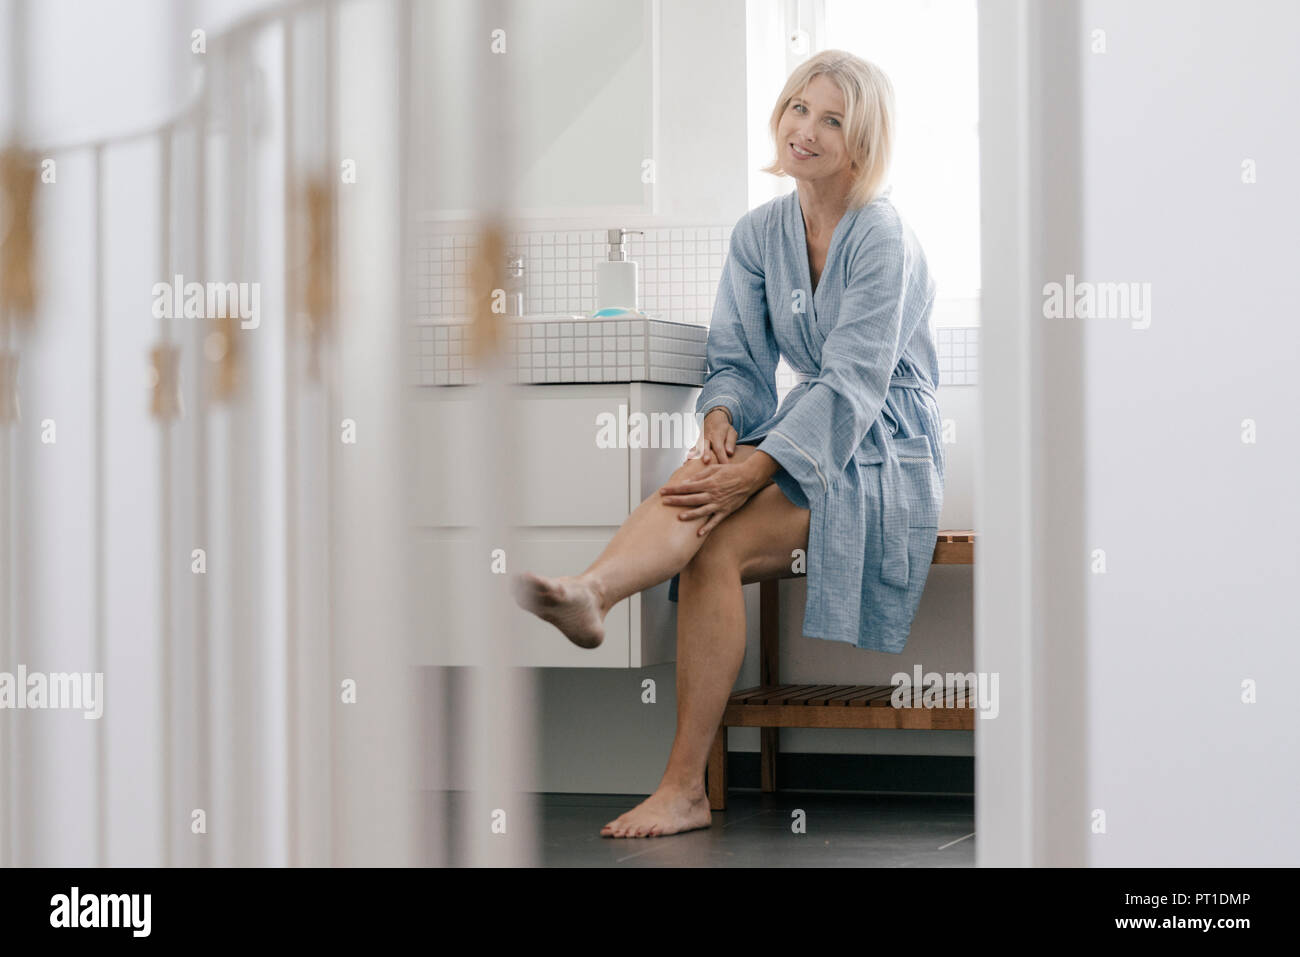 Mature women legs Portrait Of Smiling Mature Woman Sitting In Bathroom Touching Her Legs Stock Photo Alamy